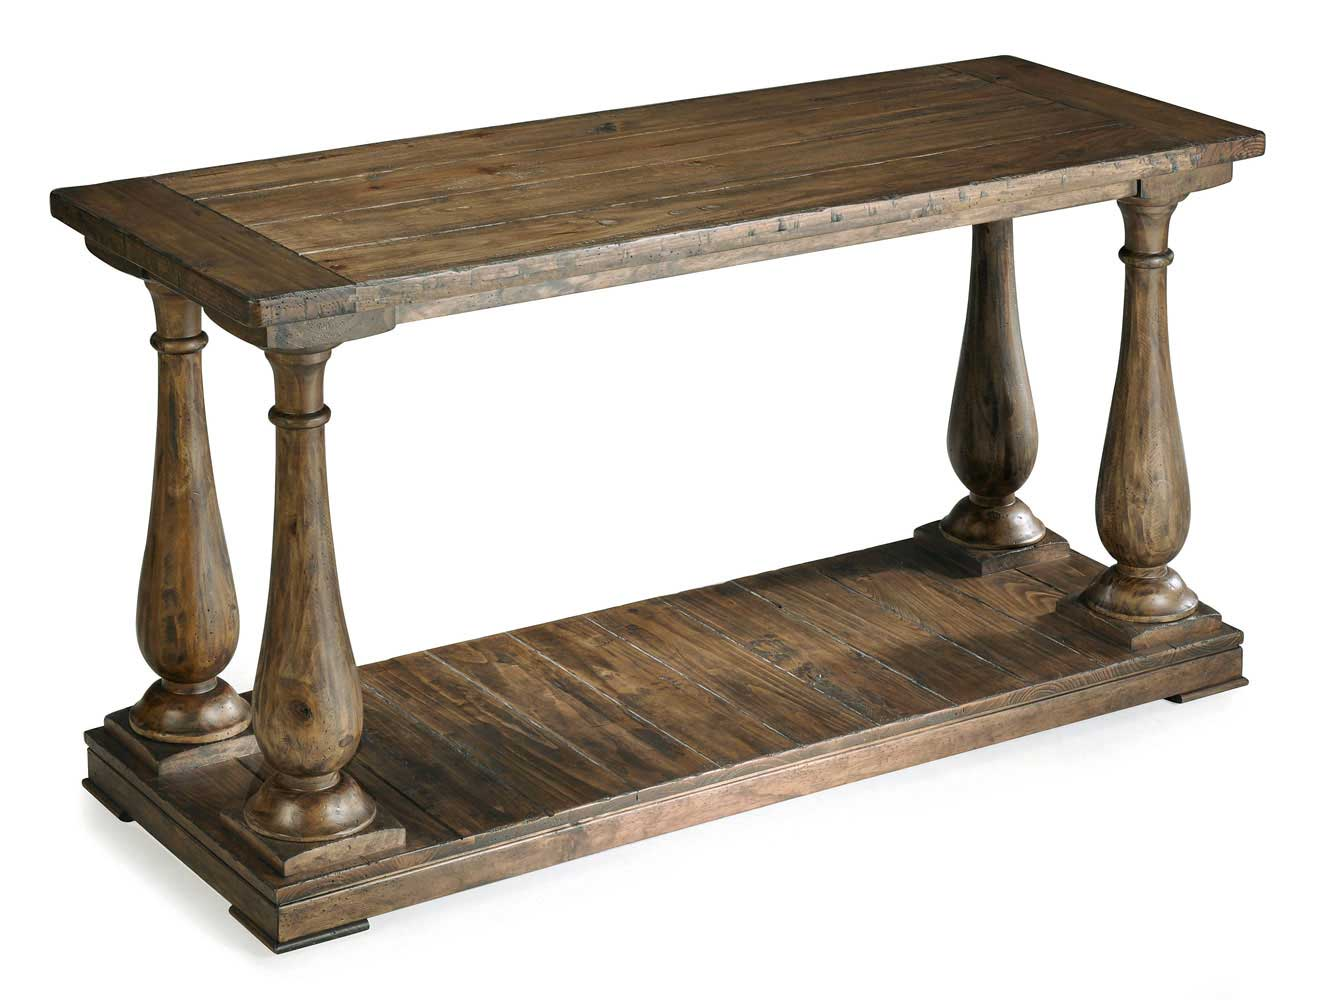 Densbury Rectangular Sofa Table (Natural Pine) - [T1695-73] : Decor South